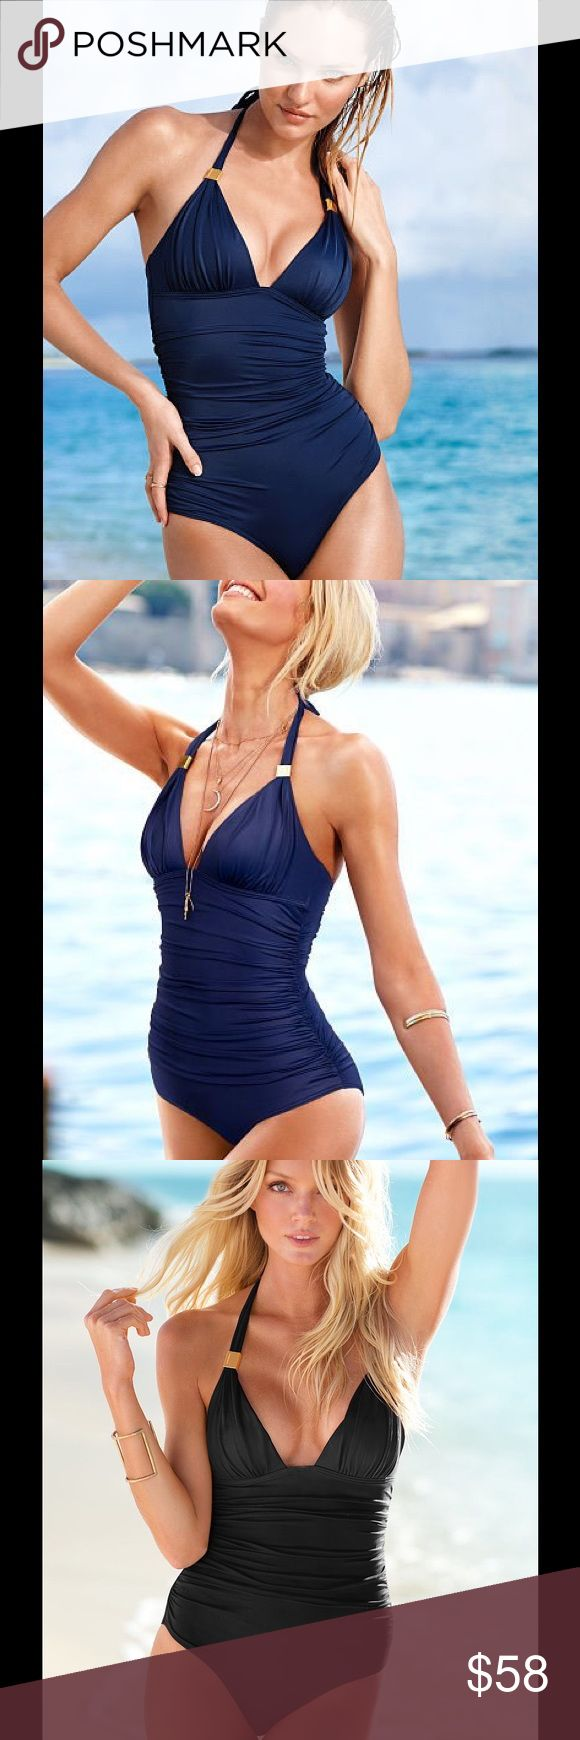 Victorias Secret Forever One Piece Maillot Victorias Secret Forever Navy Blue One Piece Maillot.  Rushing Front And Back for a Slimmer Appearance.  New. Victoria's Secret Swim One Pieces